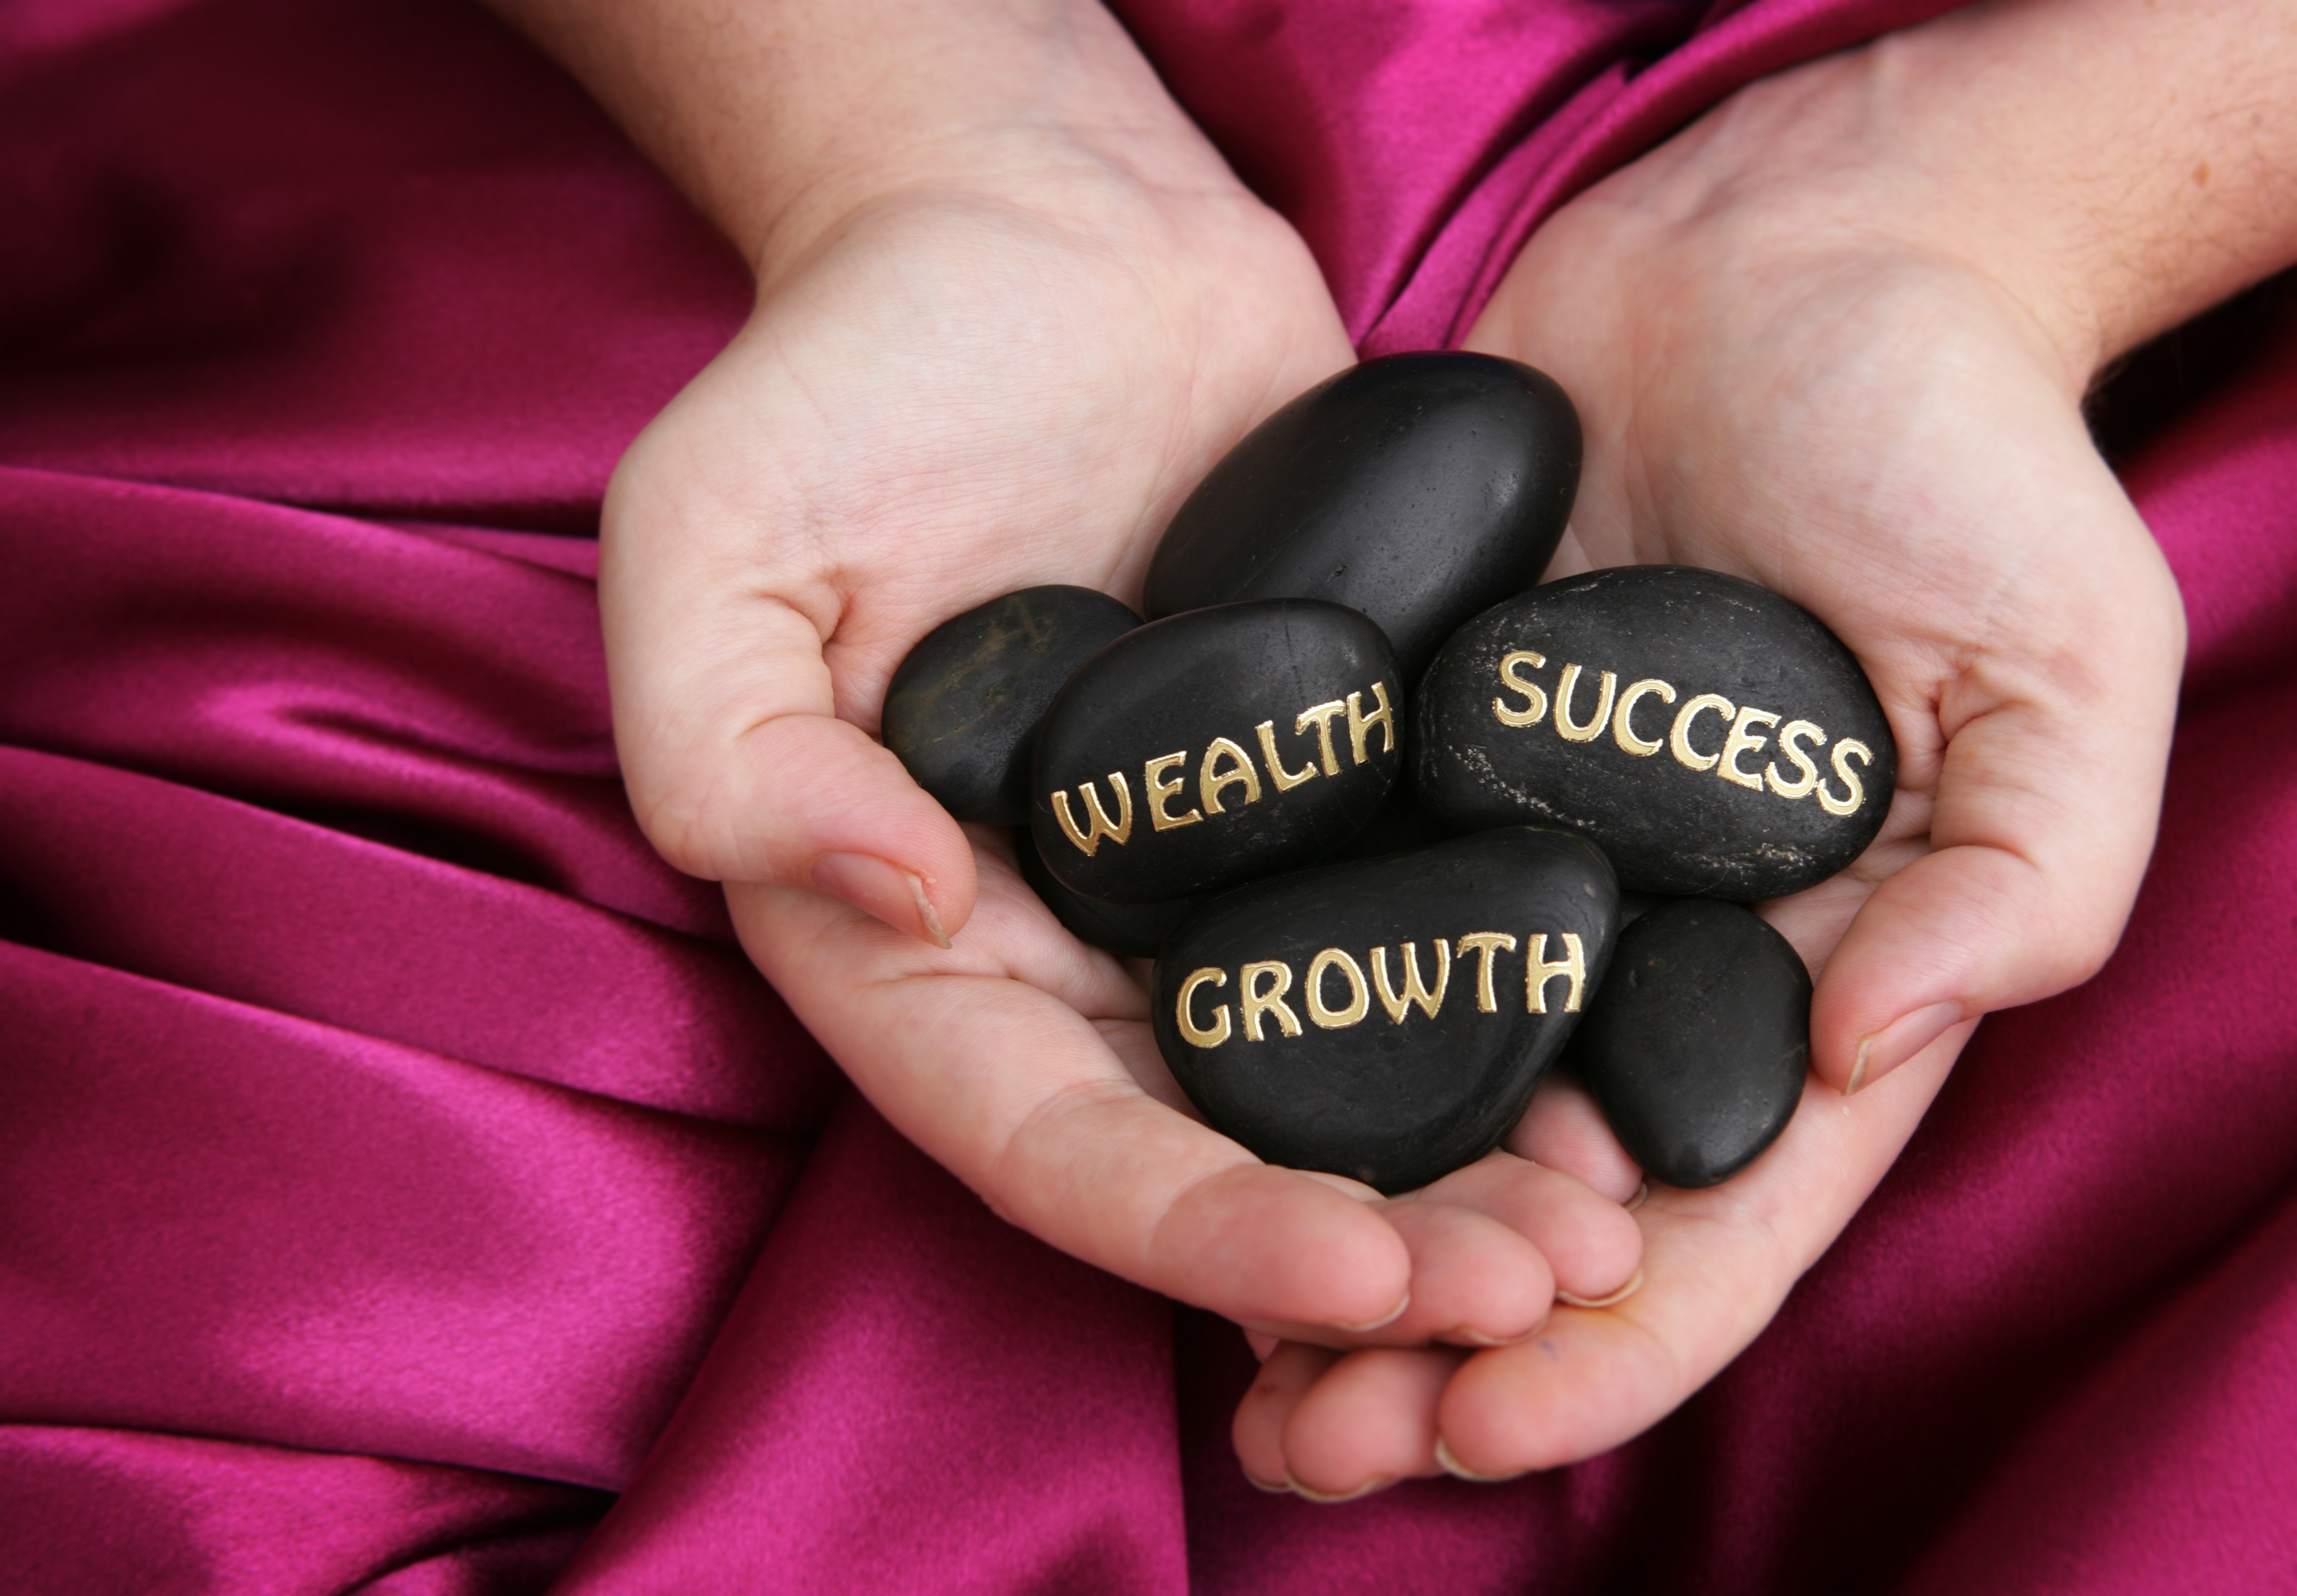 Growth,-Success,-Wealth-000013032656_Large.jpg